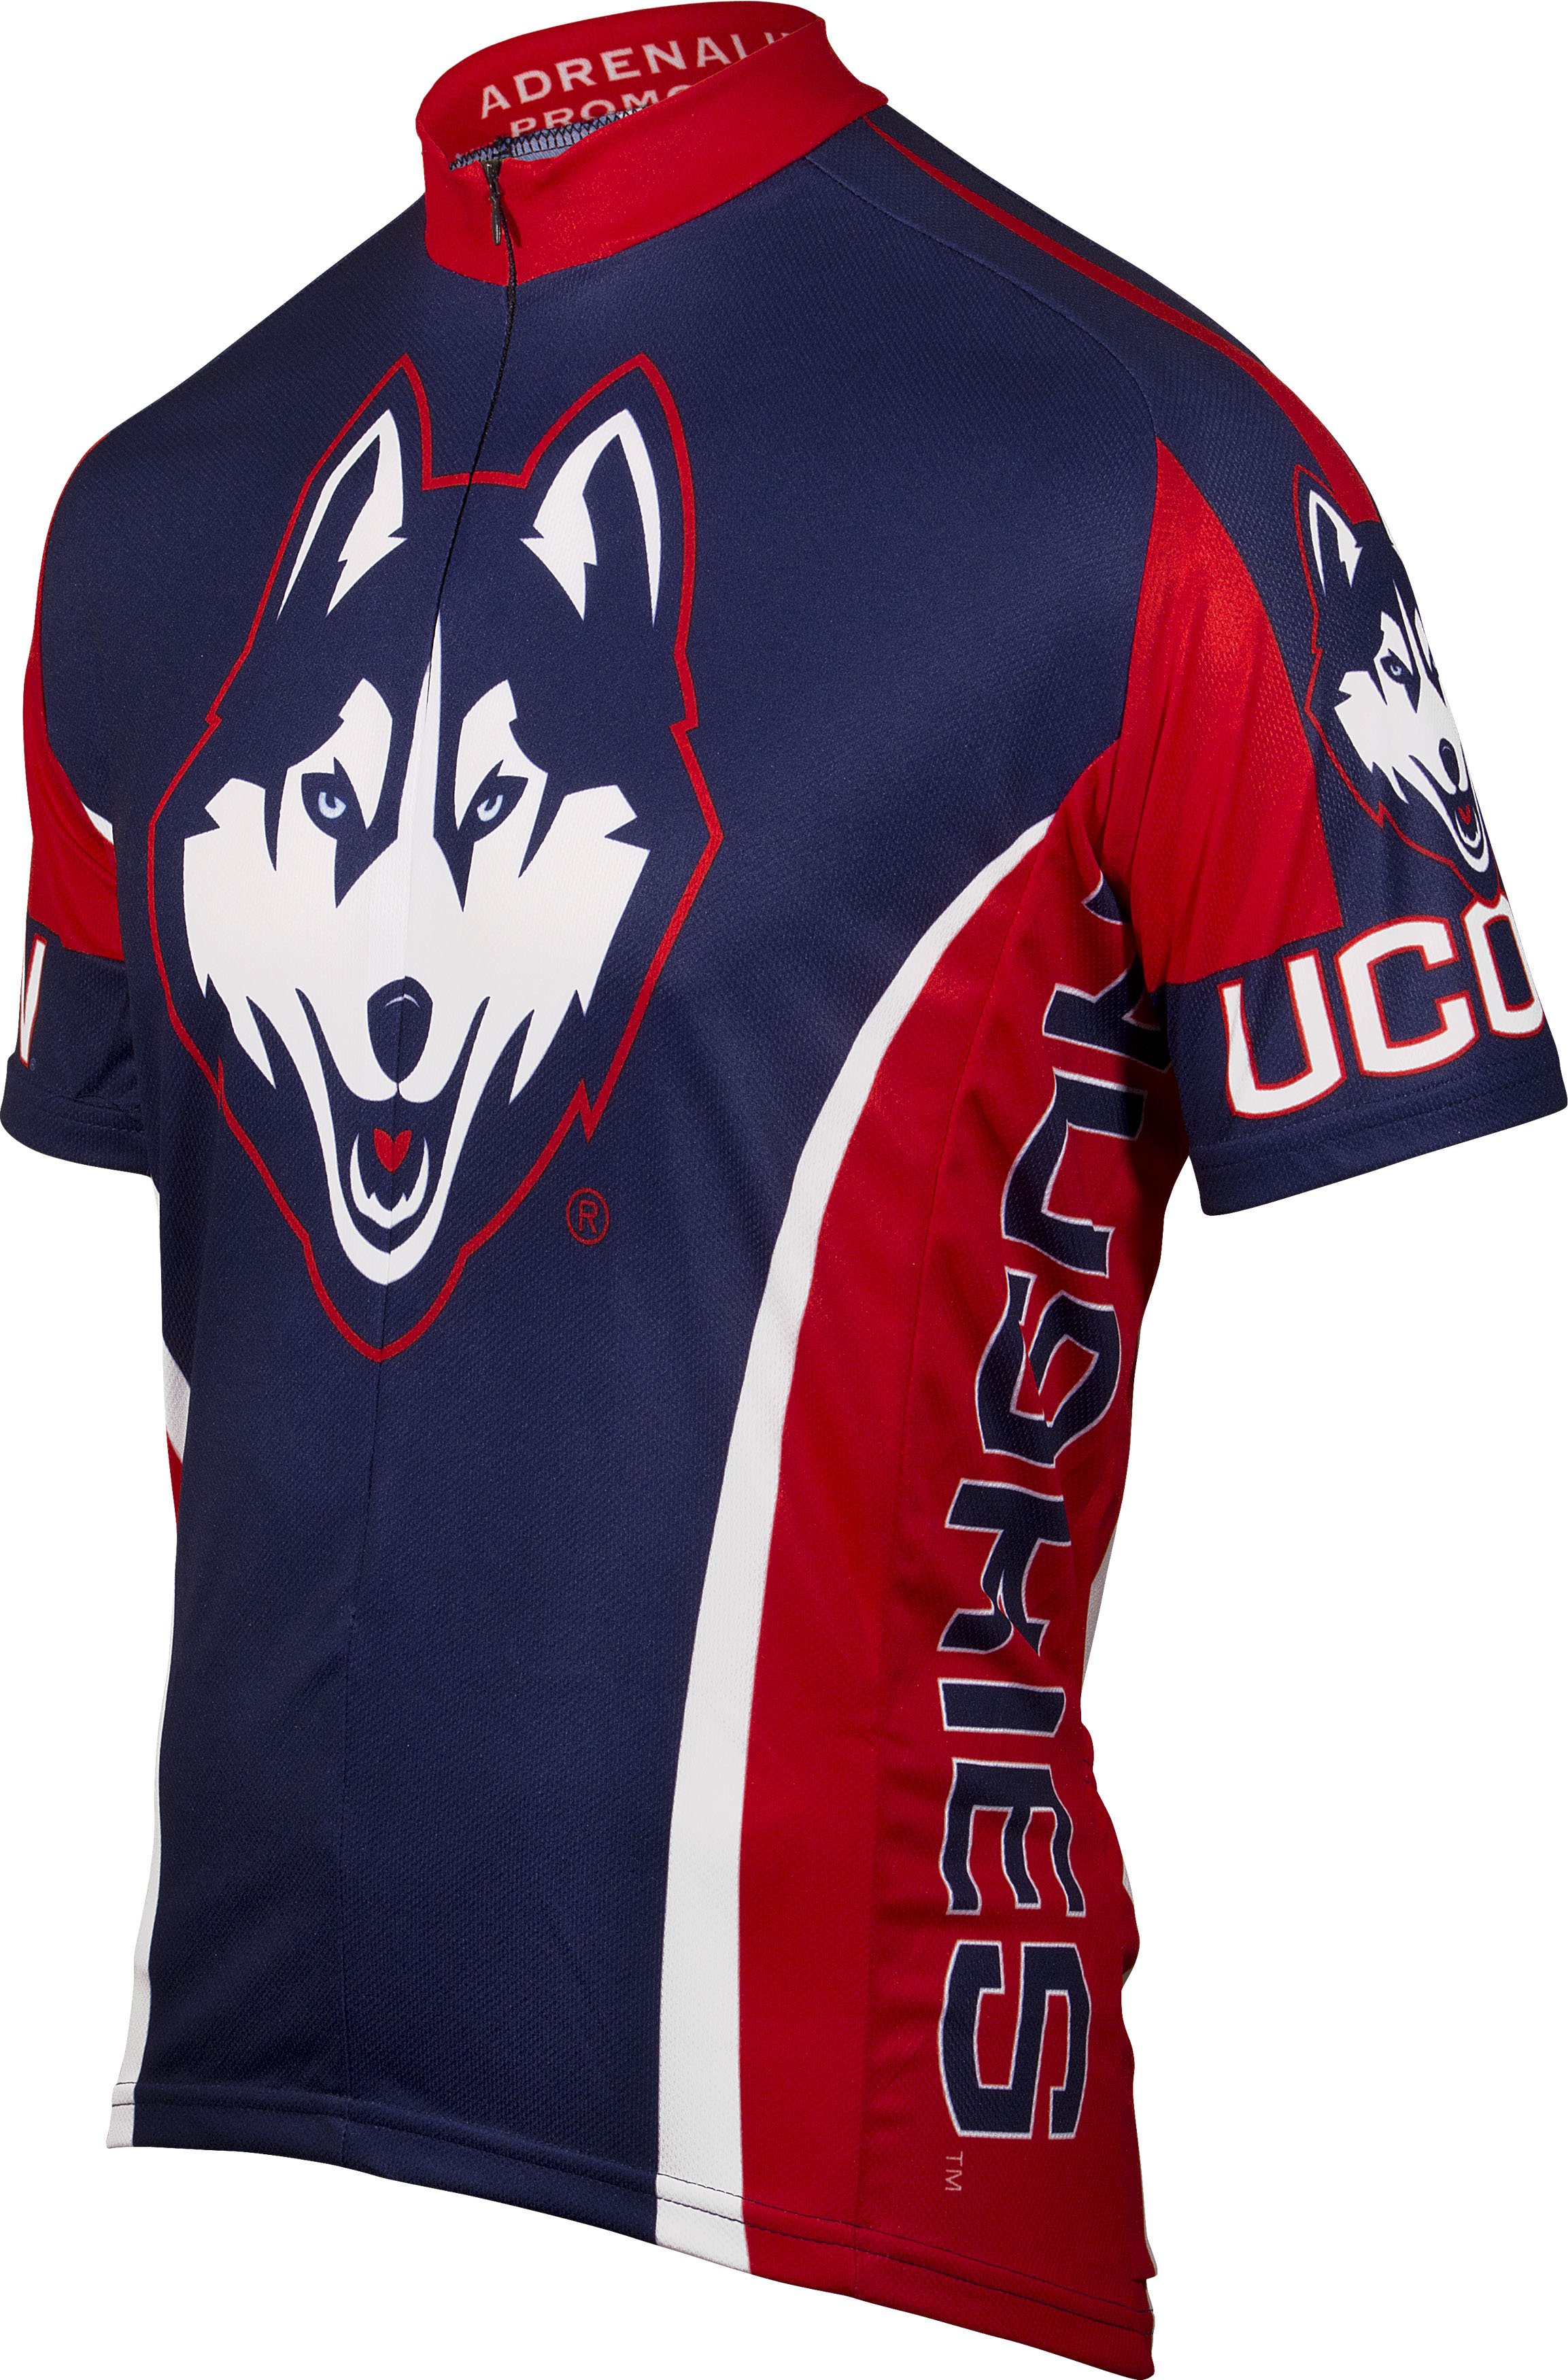 University of Connecticut (UCONN) Cycling Jersey Large